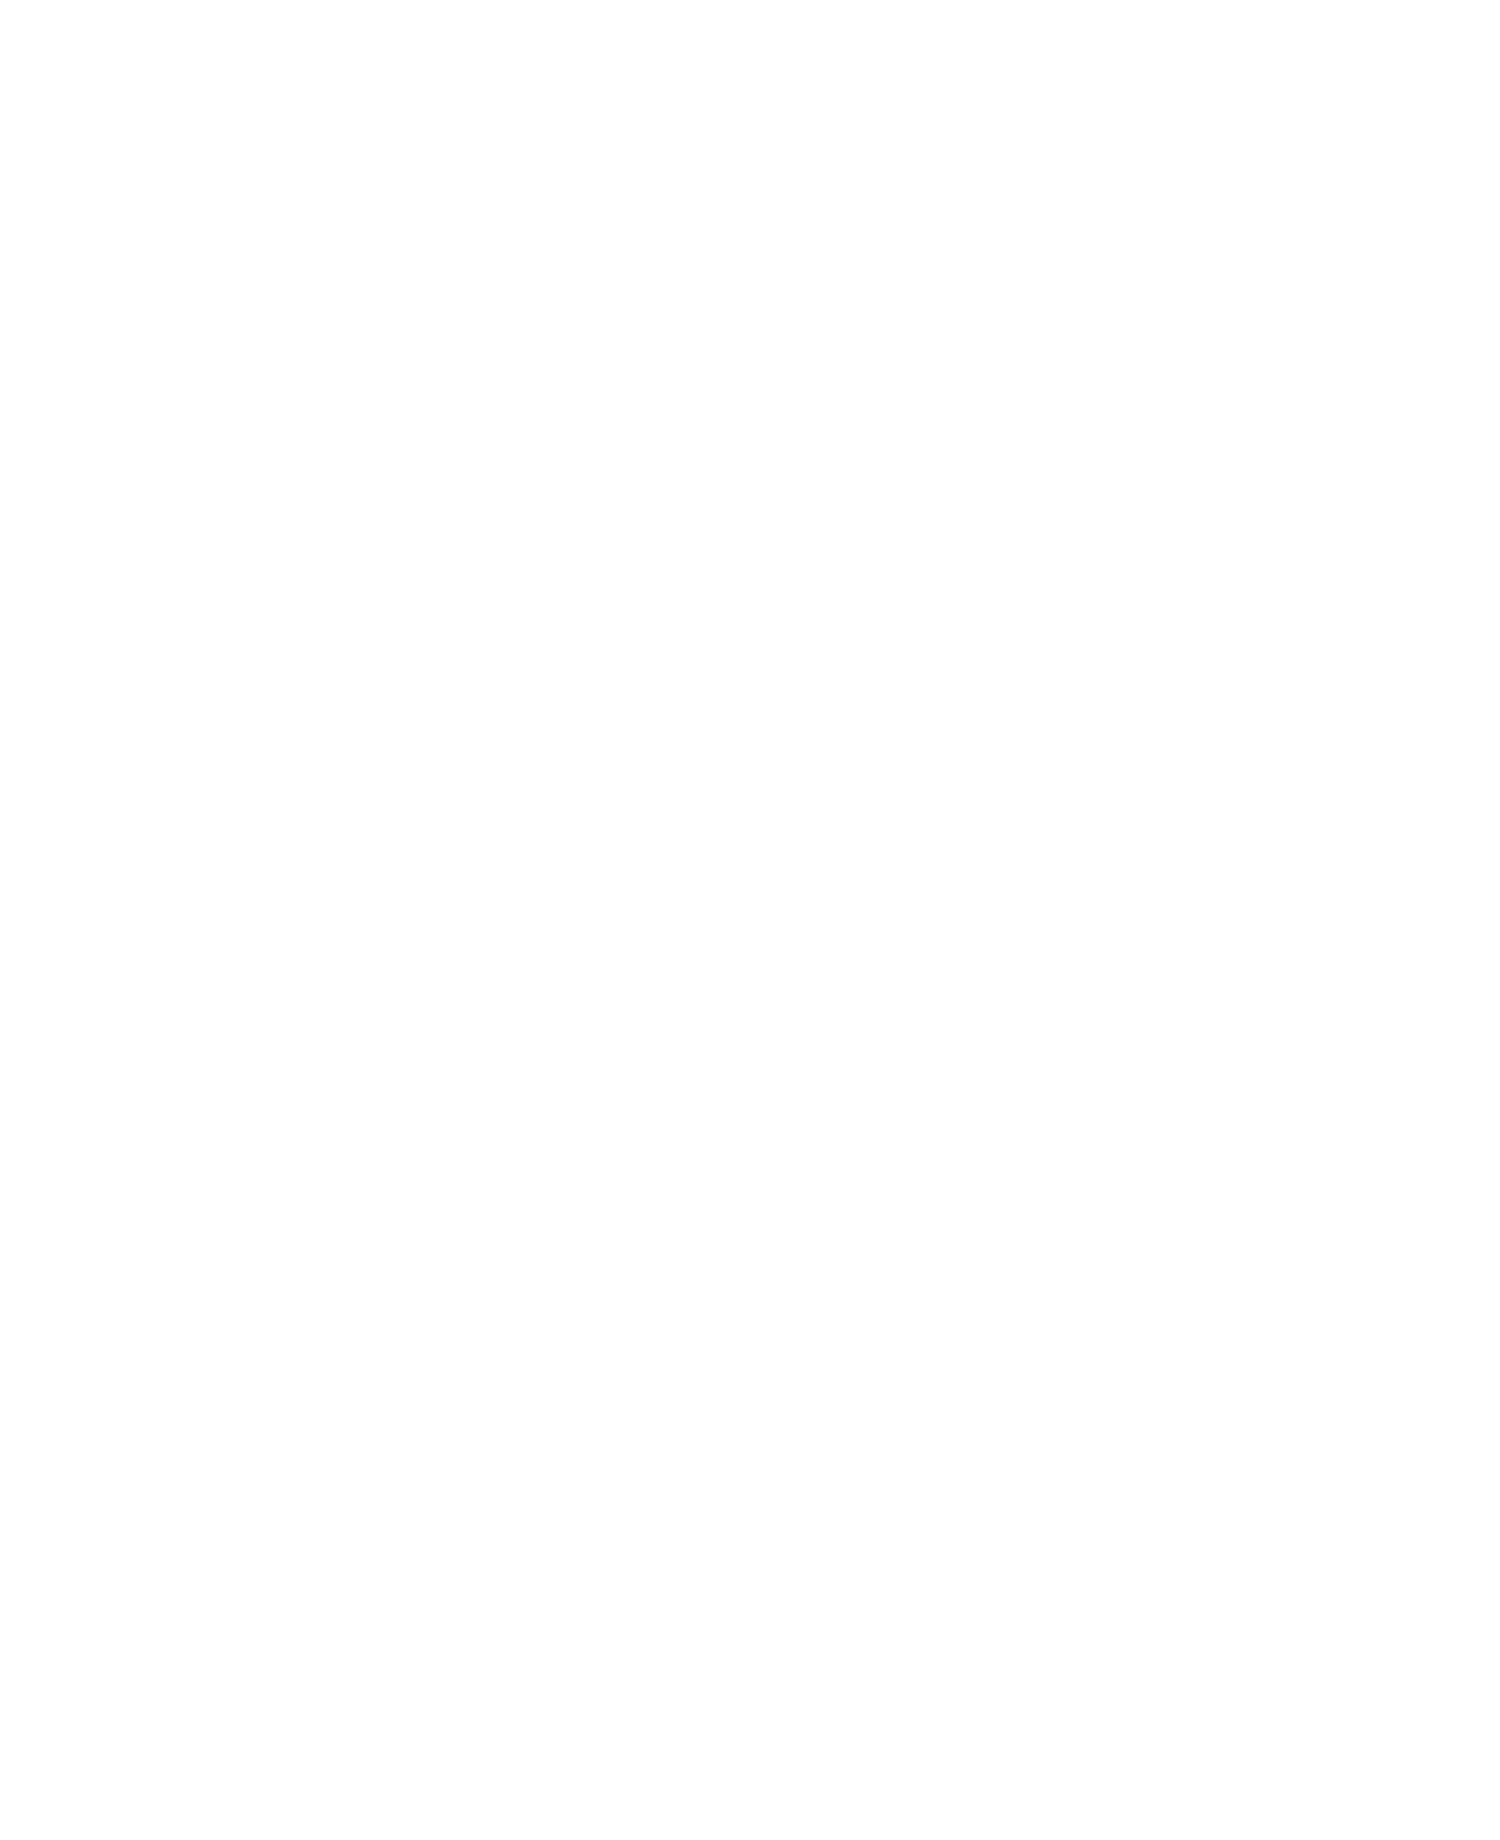 NEW LIFE,NEW STYLE CAMPAIGN 春から始まる新生活。新たなスタートは、新しいアイテムとともに。